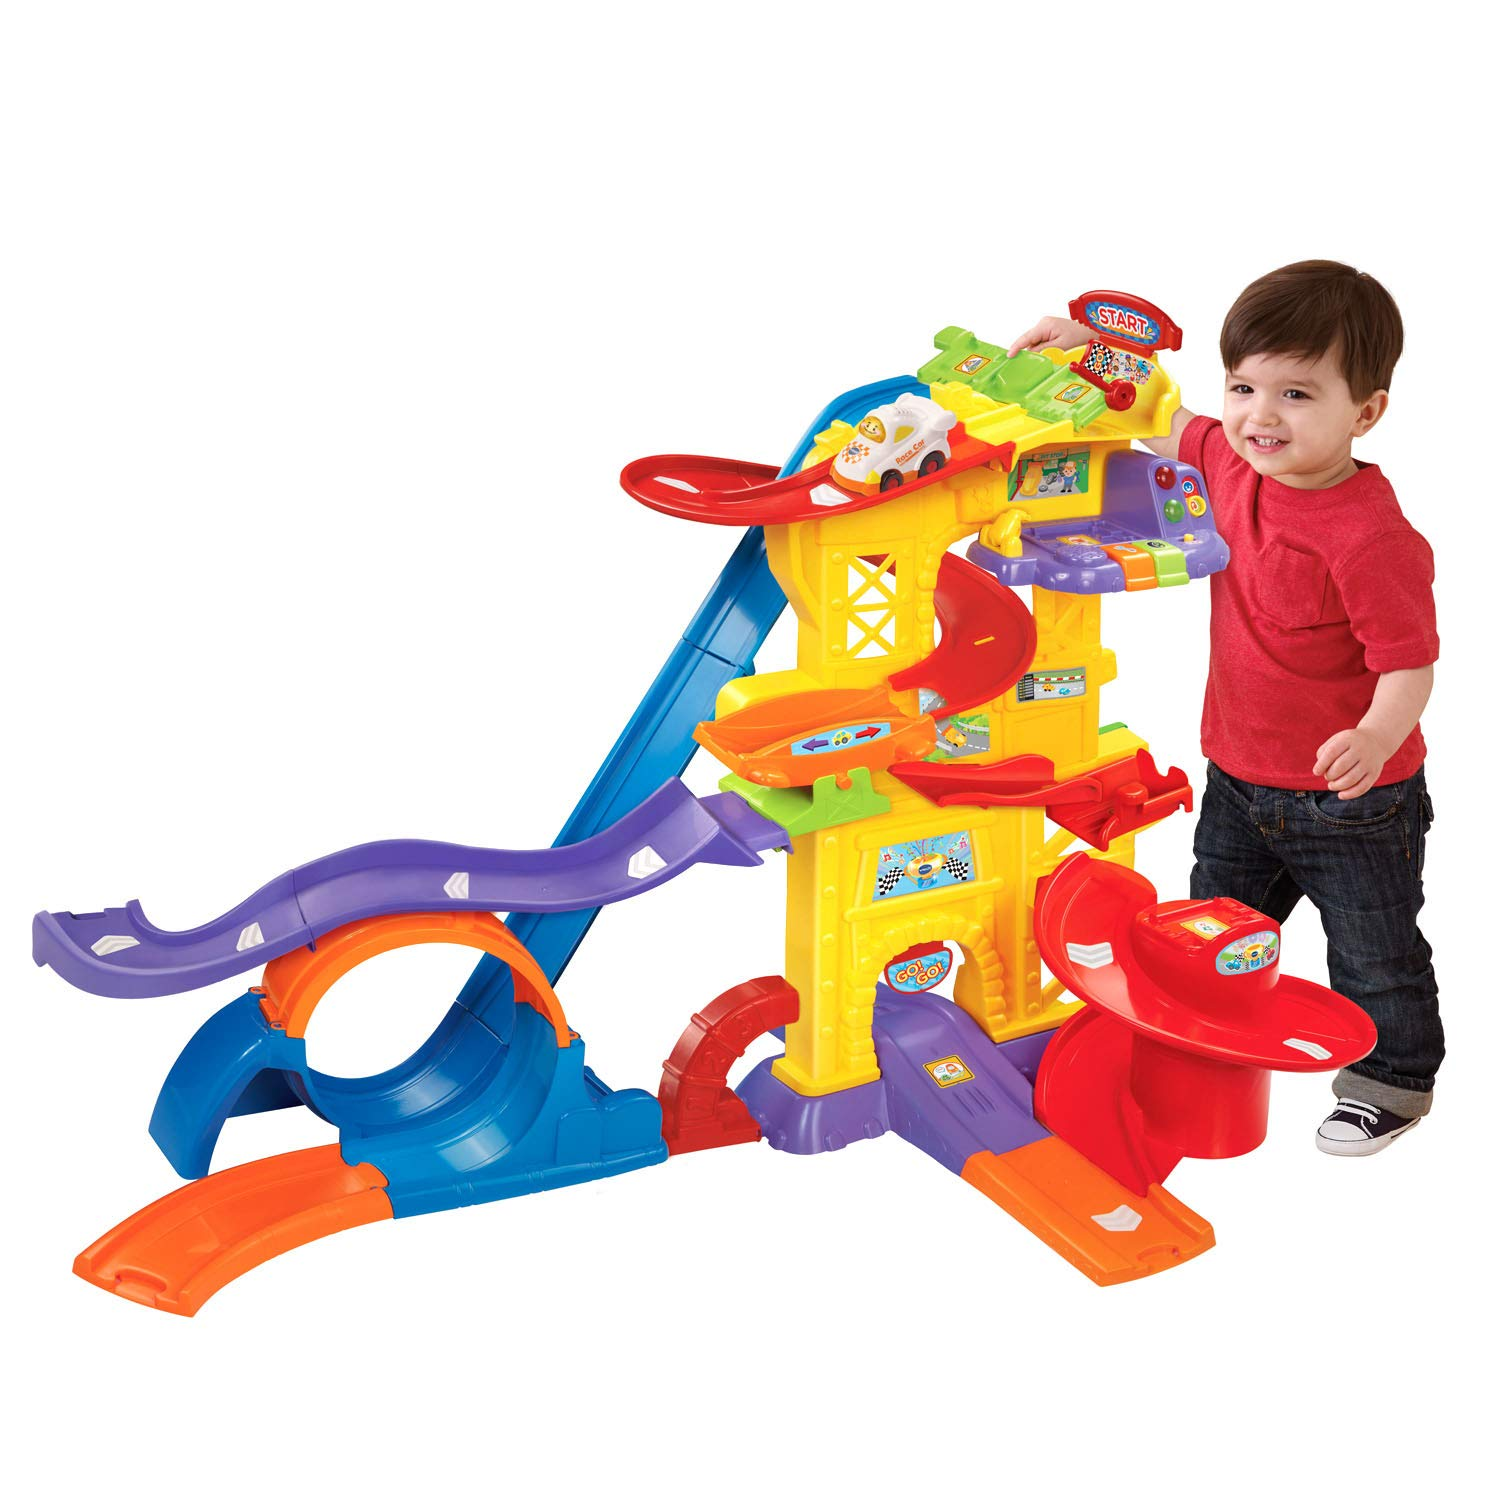 VTech Go! Go! Smart Wheels Ultimate Amazement Park Playset (Frustration Free Packaging) by VTech (Image #1)